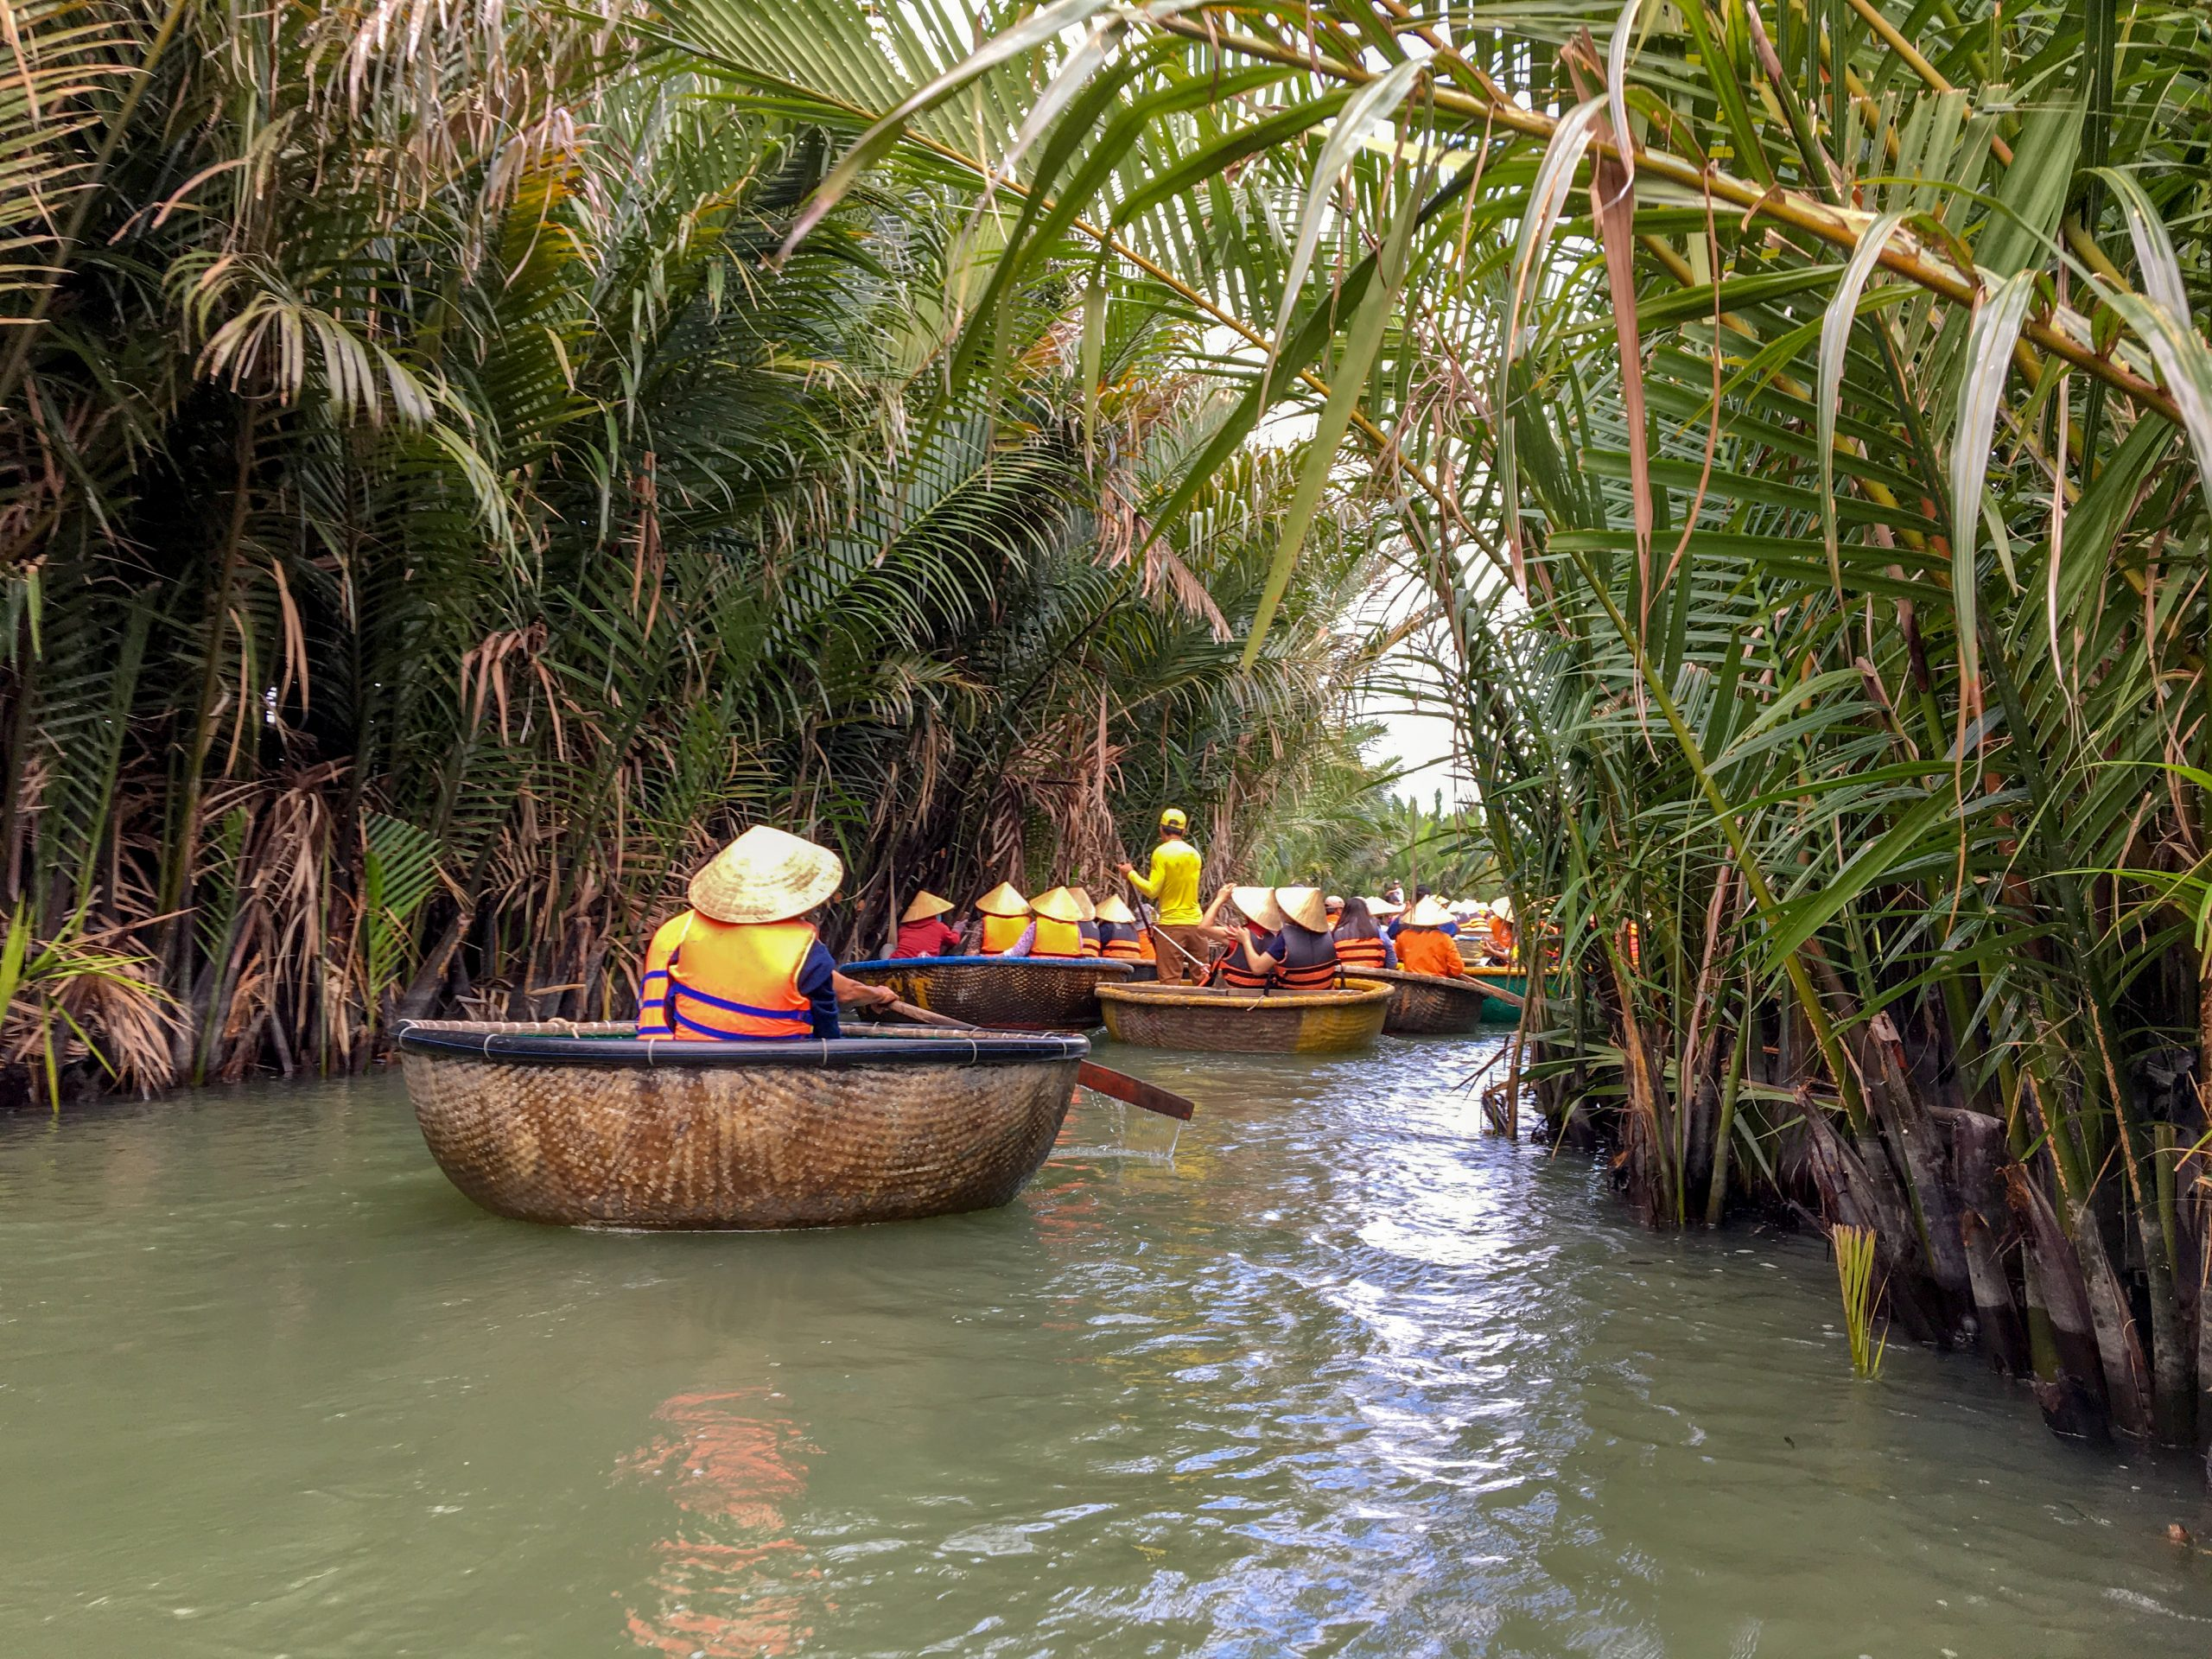 Paddling Along The Palm Tree Forest During The Biking Through Hoi An And The Rural Areas During Your Bicycle Tour And Cooking Class Experience